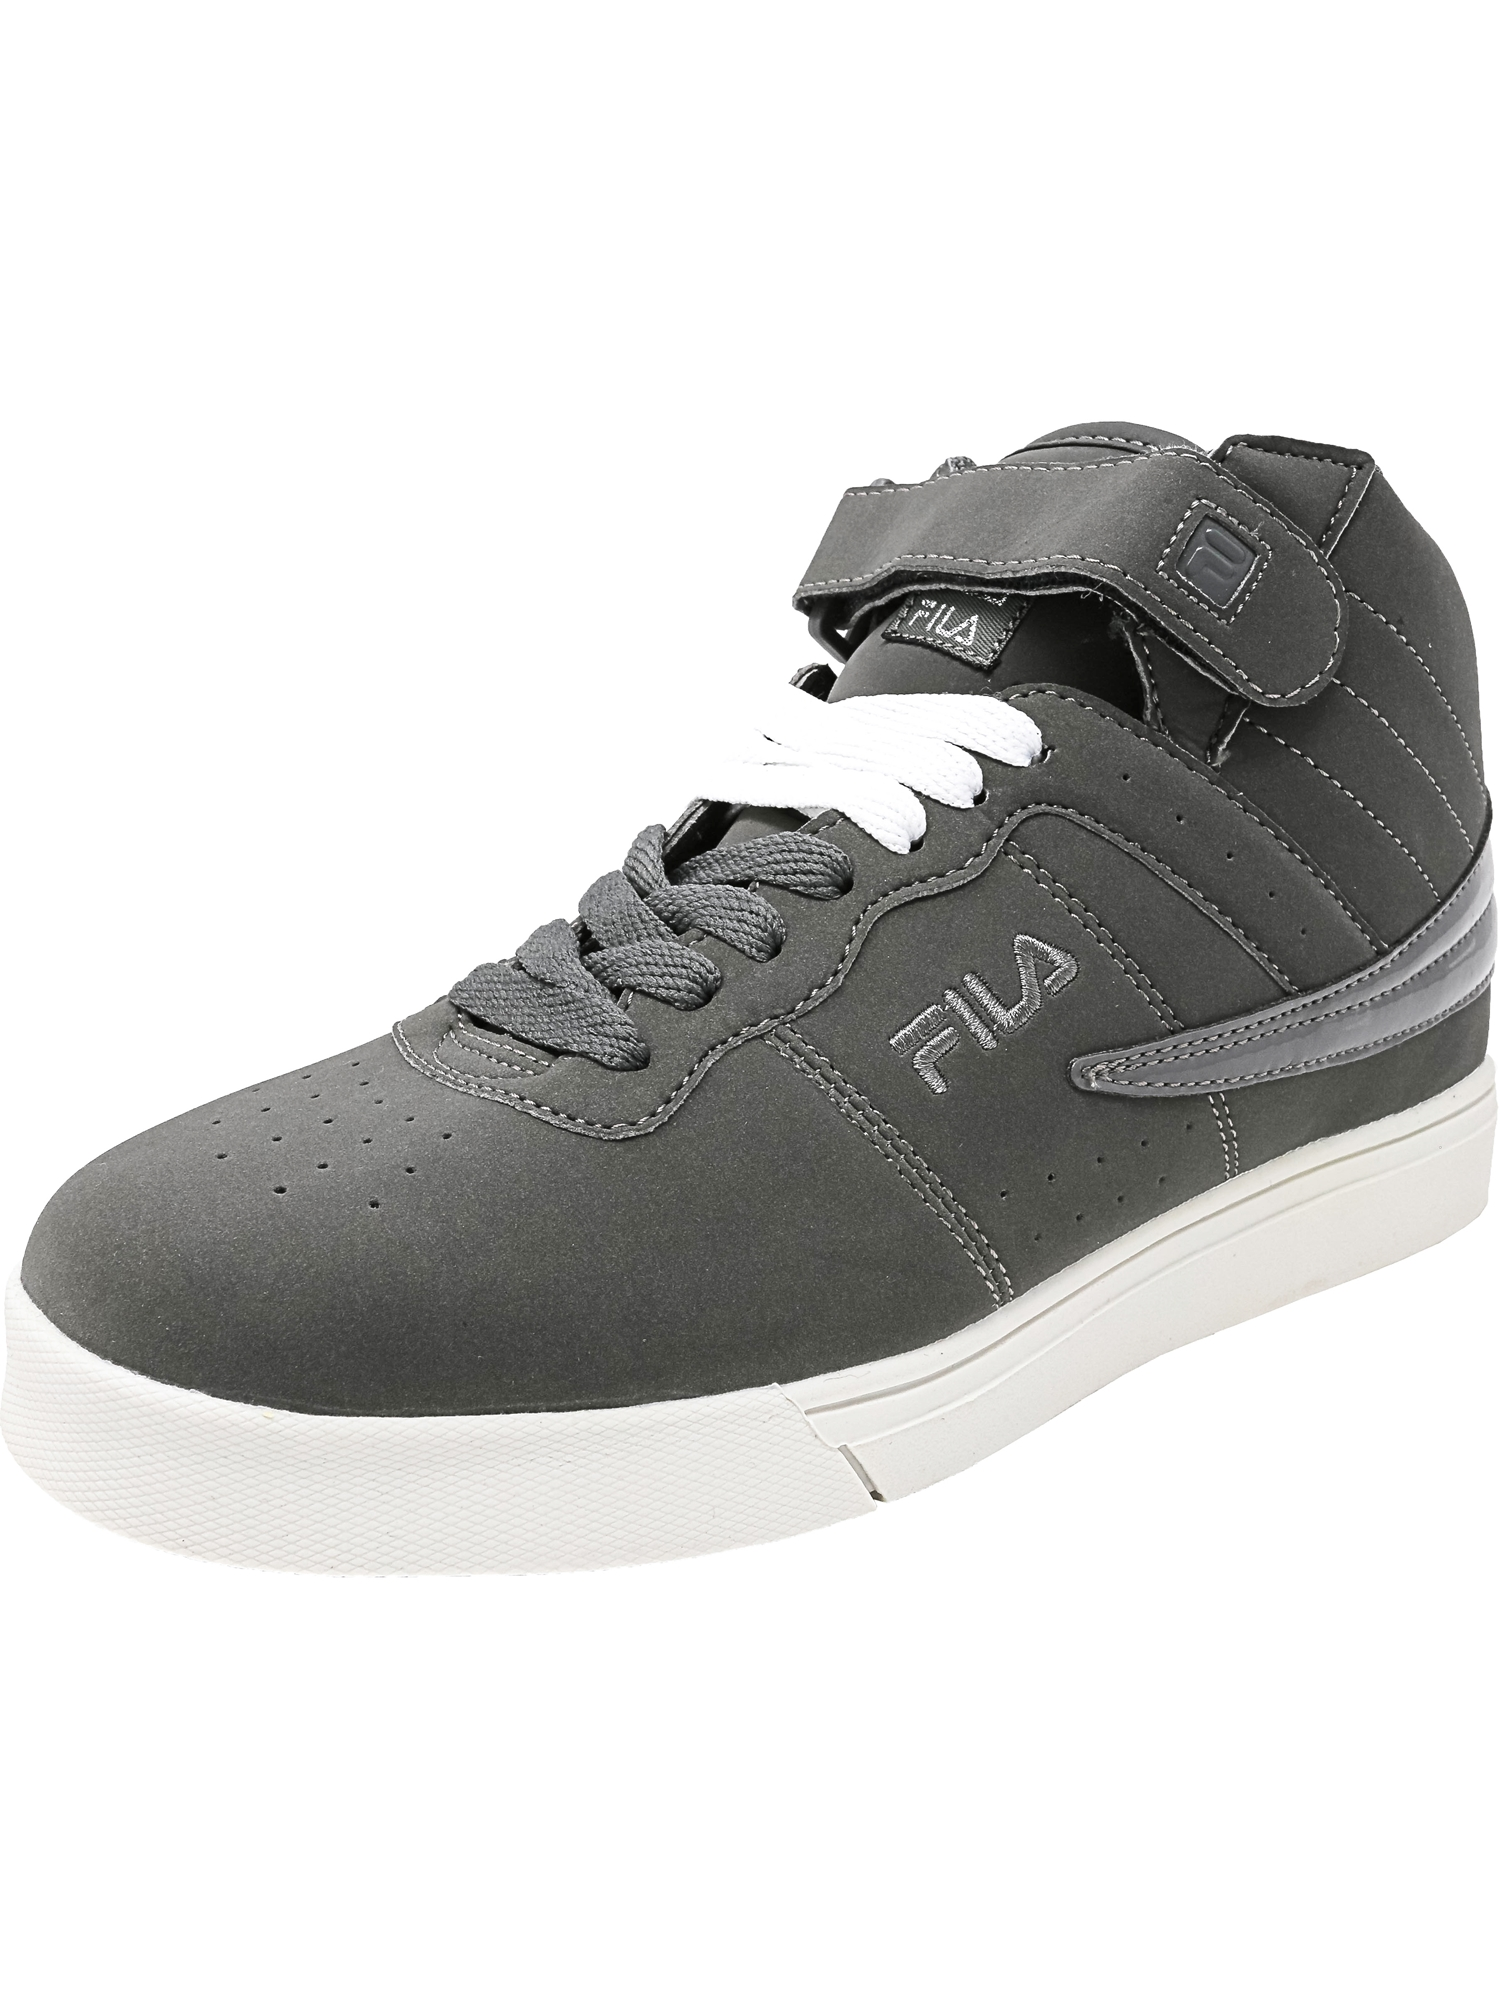 Fila Men's Vulc 13 Pewter / Metallic Silver White Ankle-High Leather Fashion Sneaker - 8M